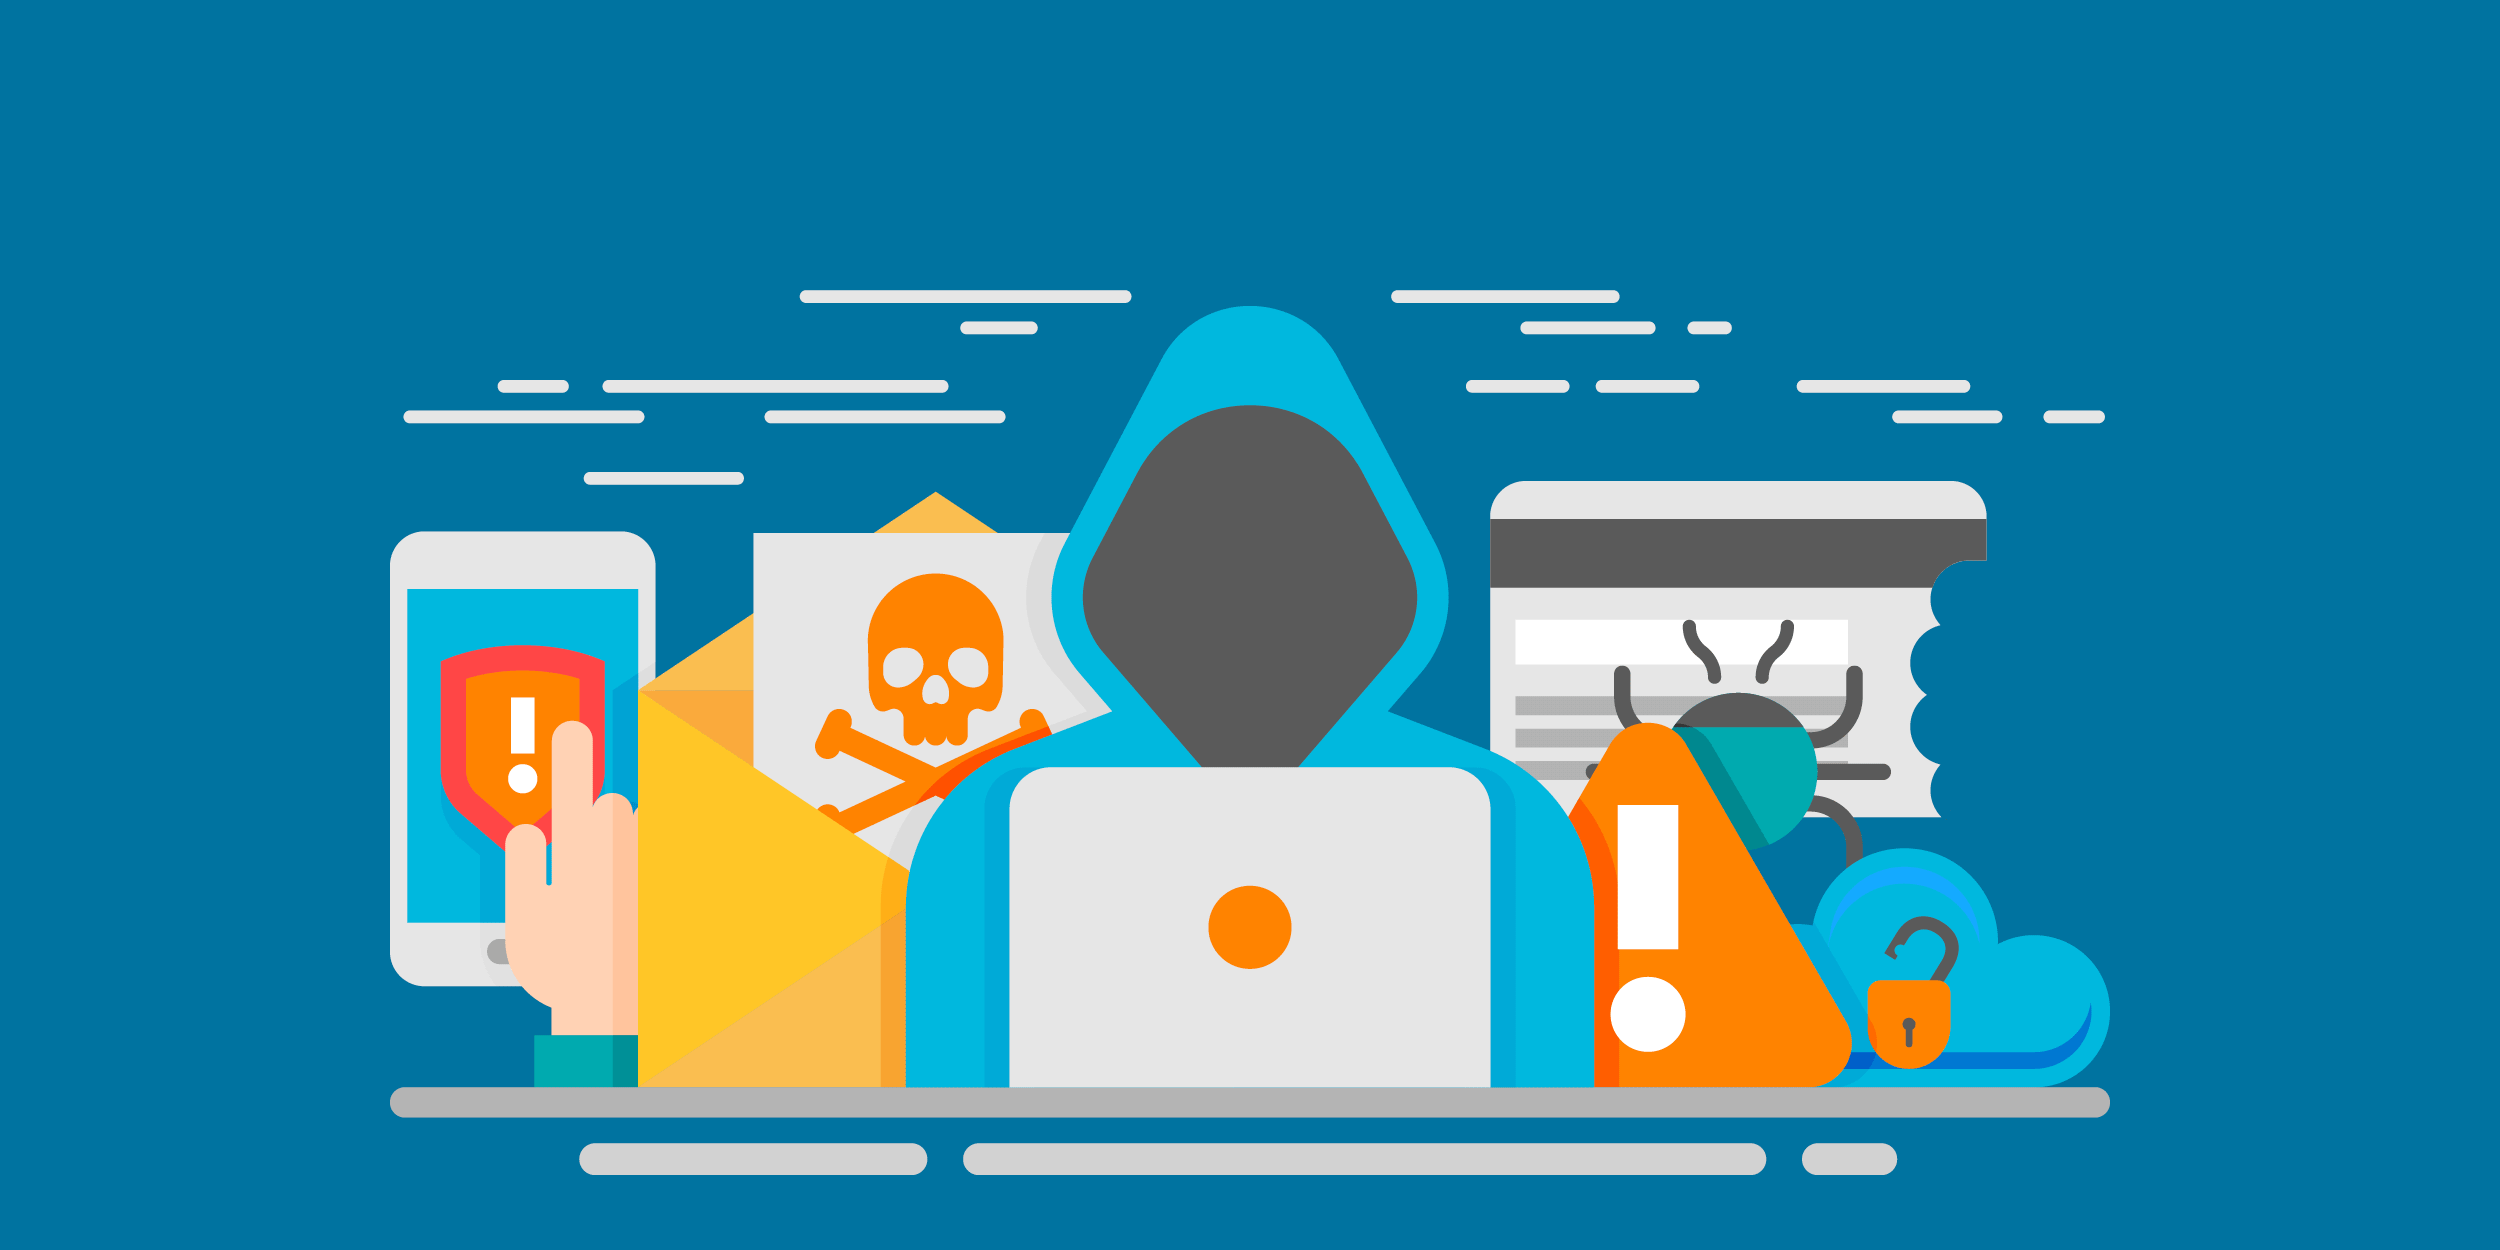 illustration of a faceless person with a laptop next to a poisoned letter and a credit card with a bug on it, representing hackers and the need for digital security